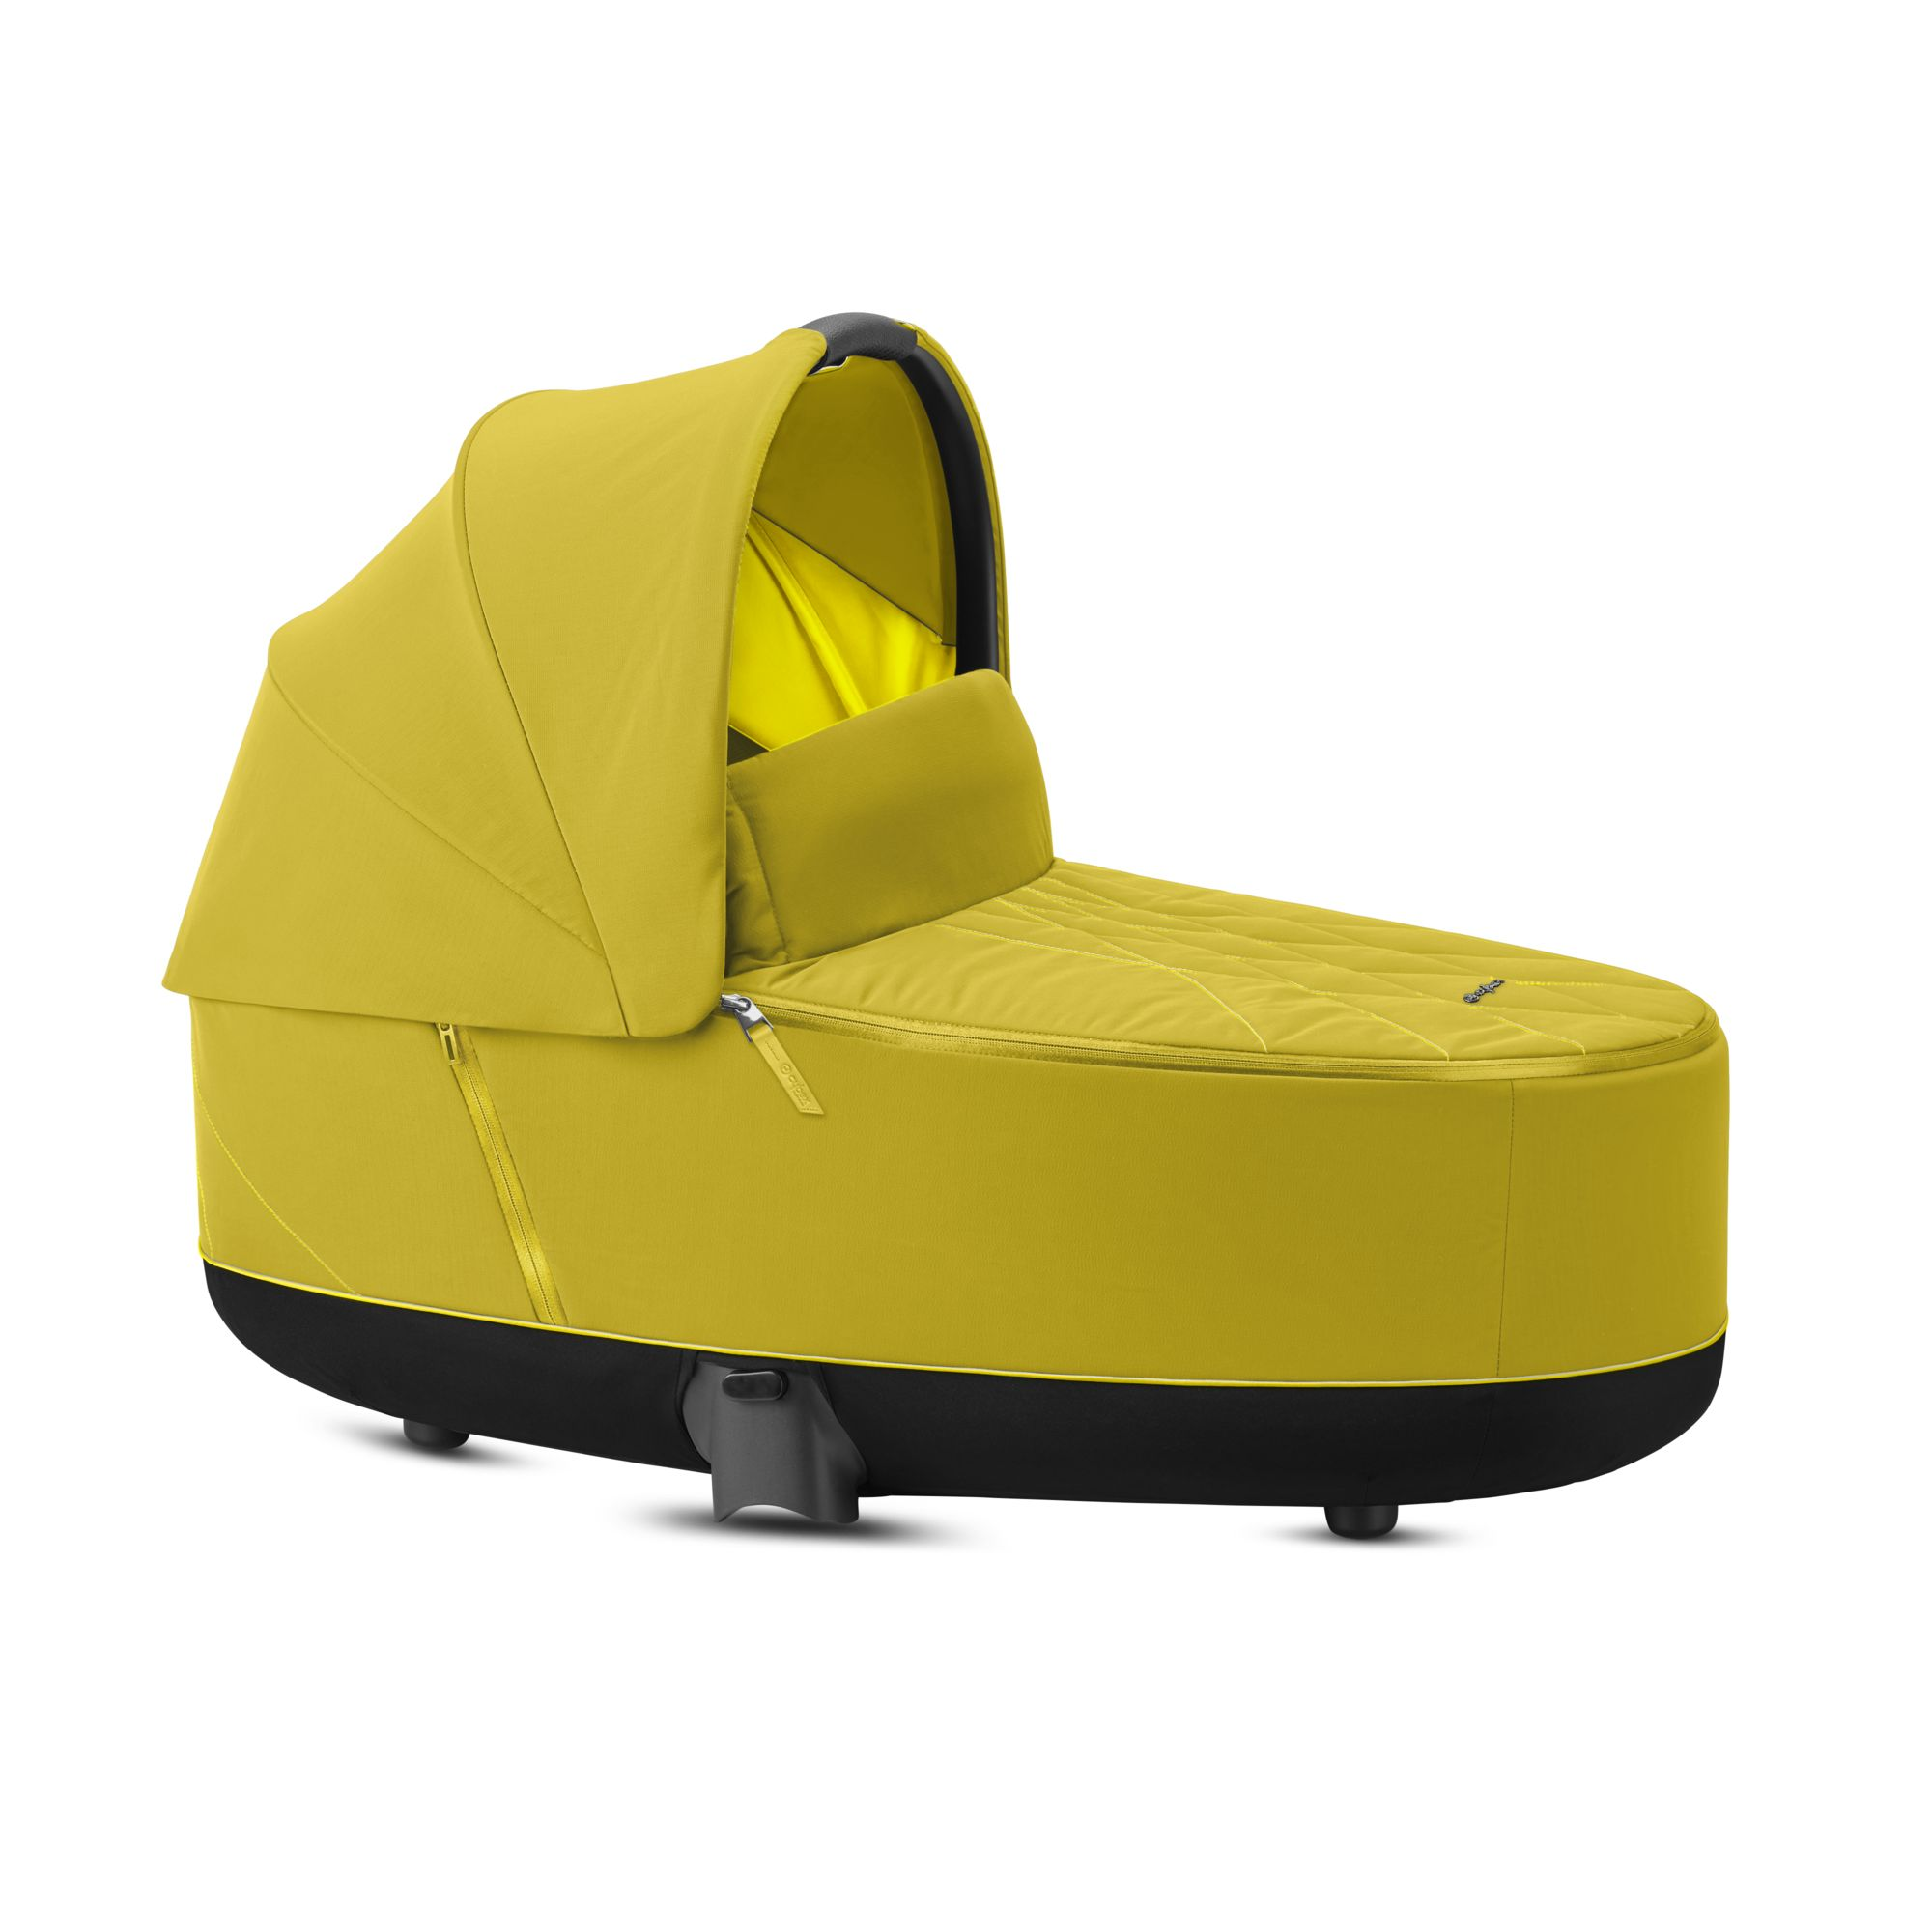 CYBEX Priam Lux Carry Cot Mustard Yellow 2020